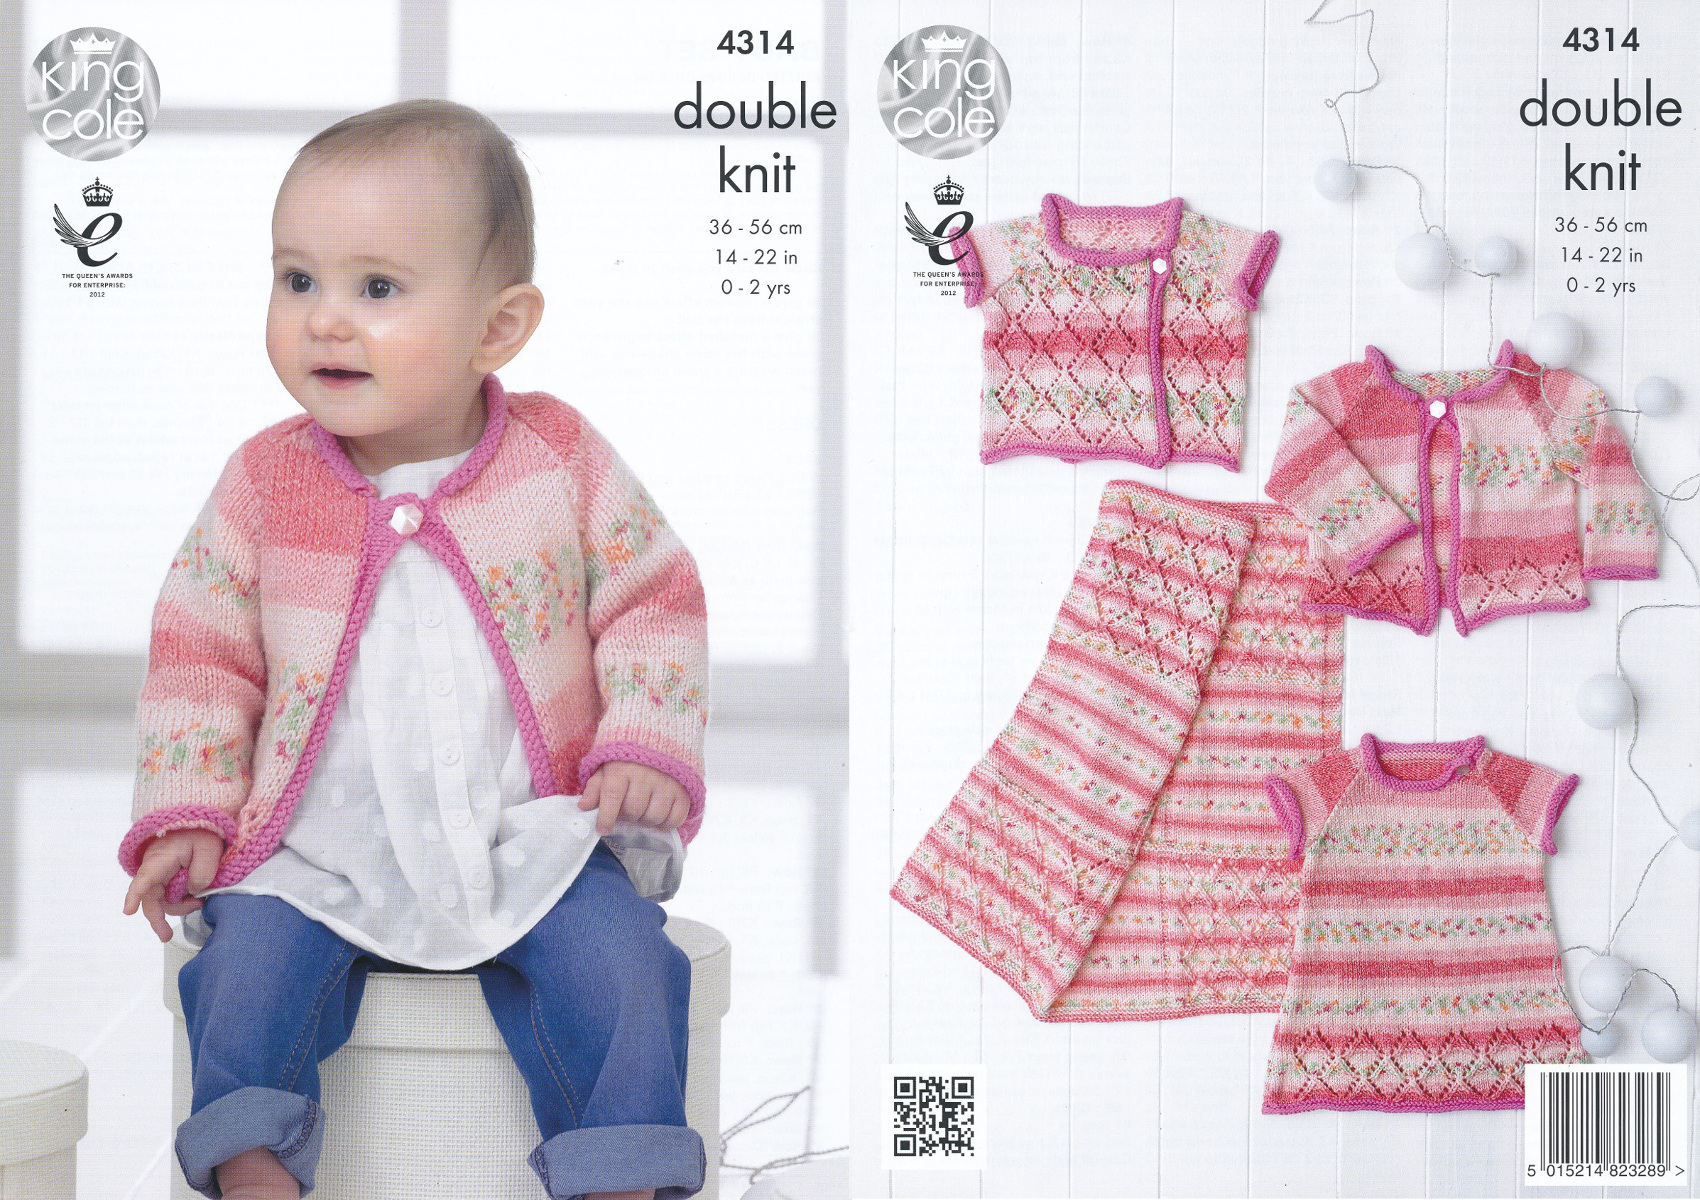 Baby drifter dk knitting pattern king cole cardigan waistcoat baby drifter dk knitting pattern king cole cardigan waistcoat dress blanket 4314 bankloansurffo Gallery